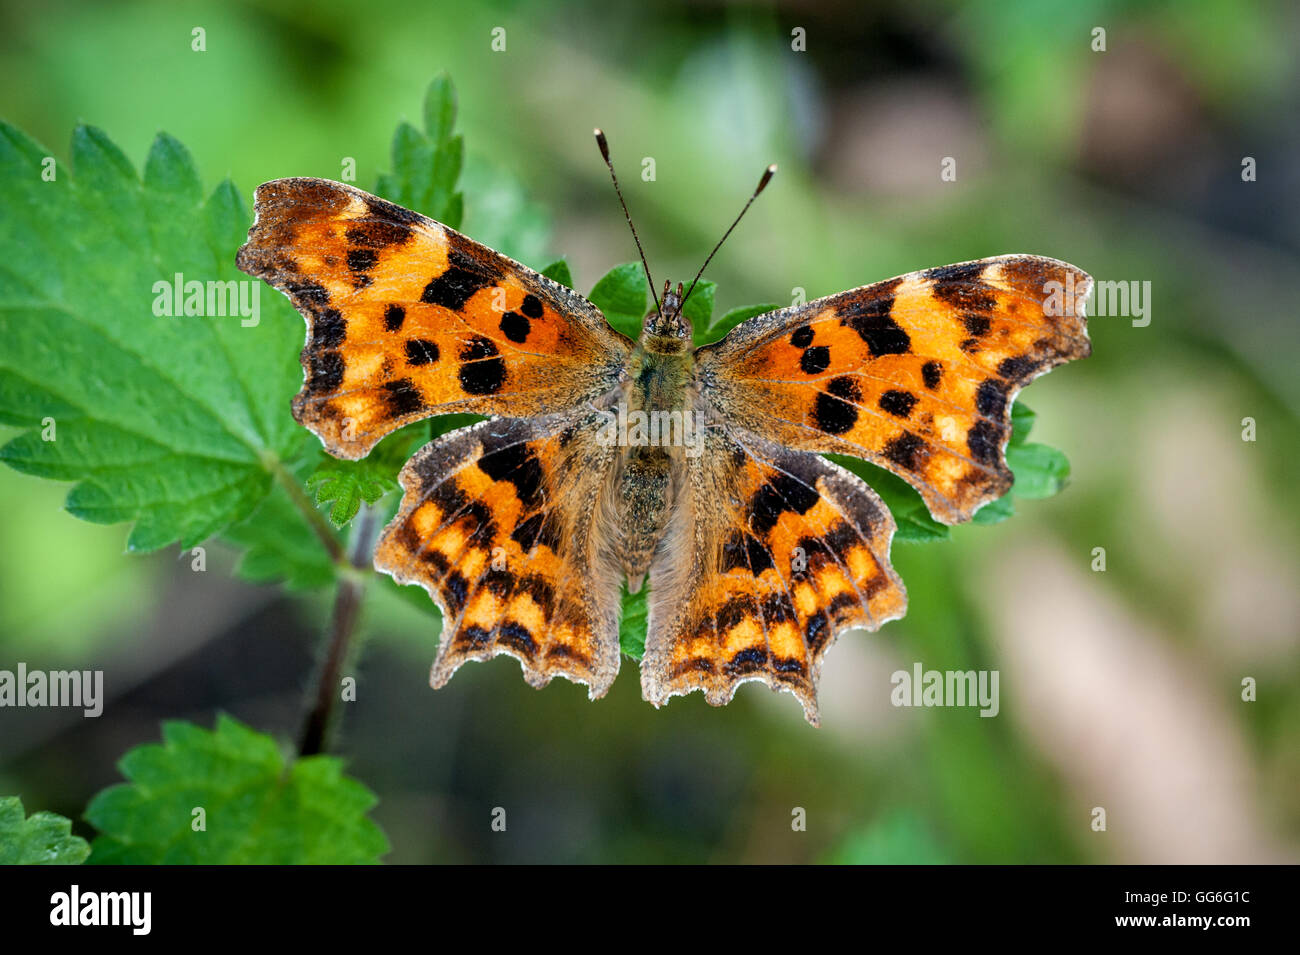 A Comma Butterfly on a leaf in southern England - Stock Image